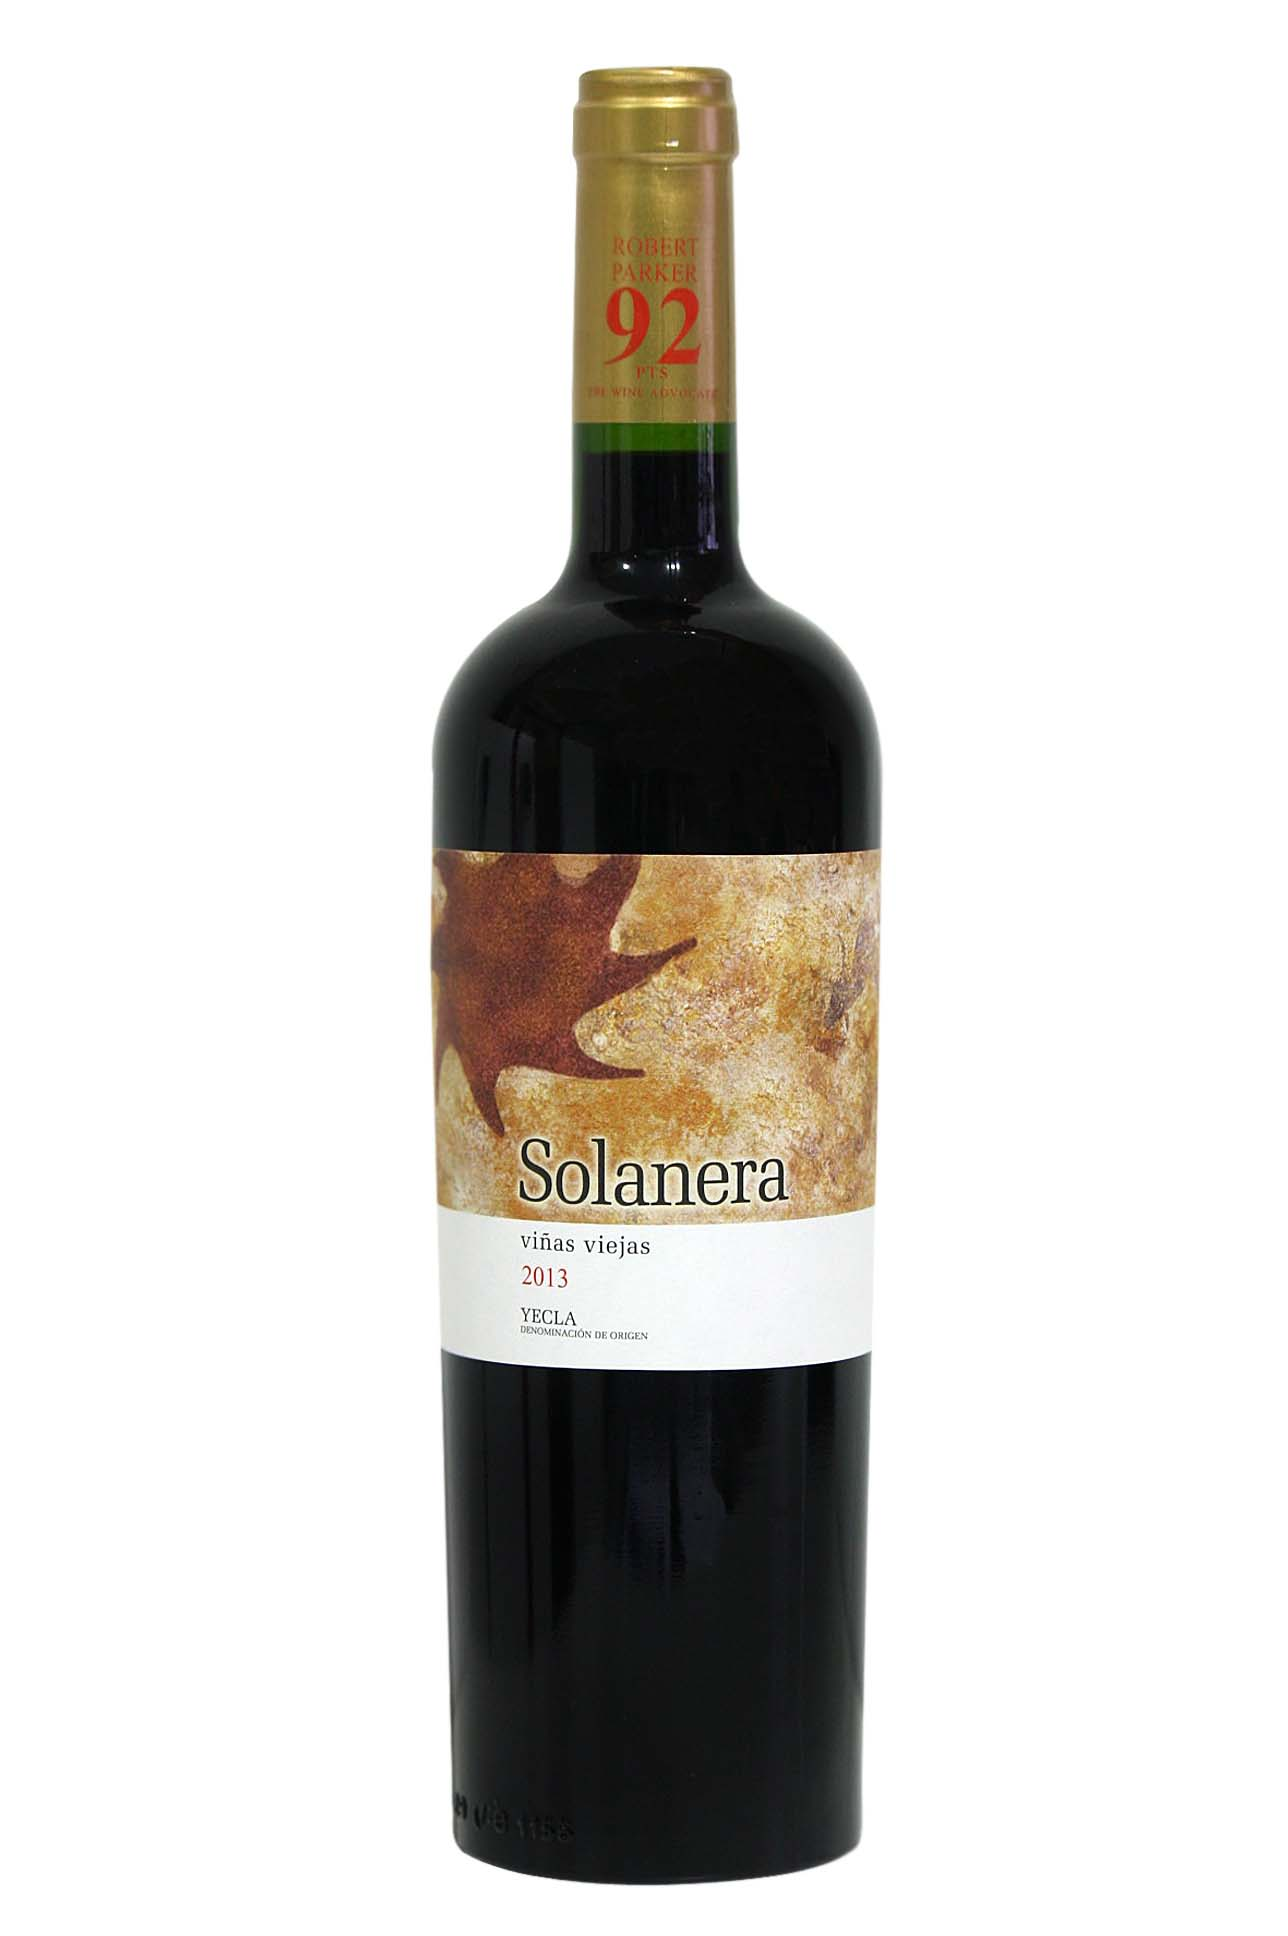 Solanera red wine